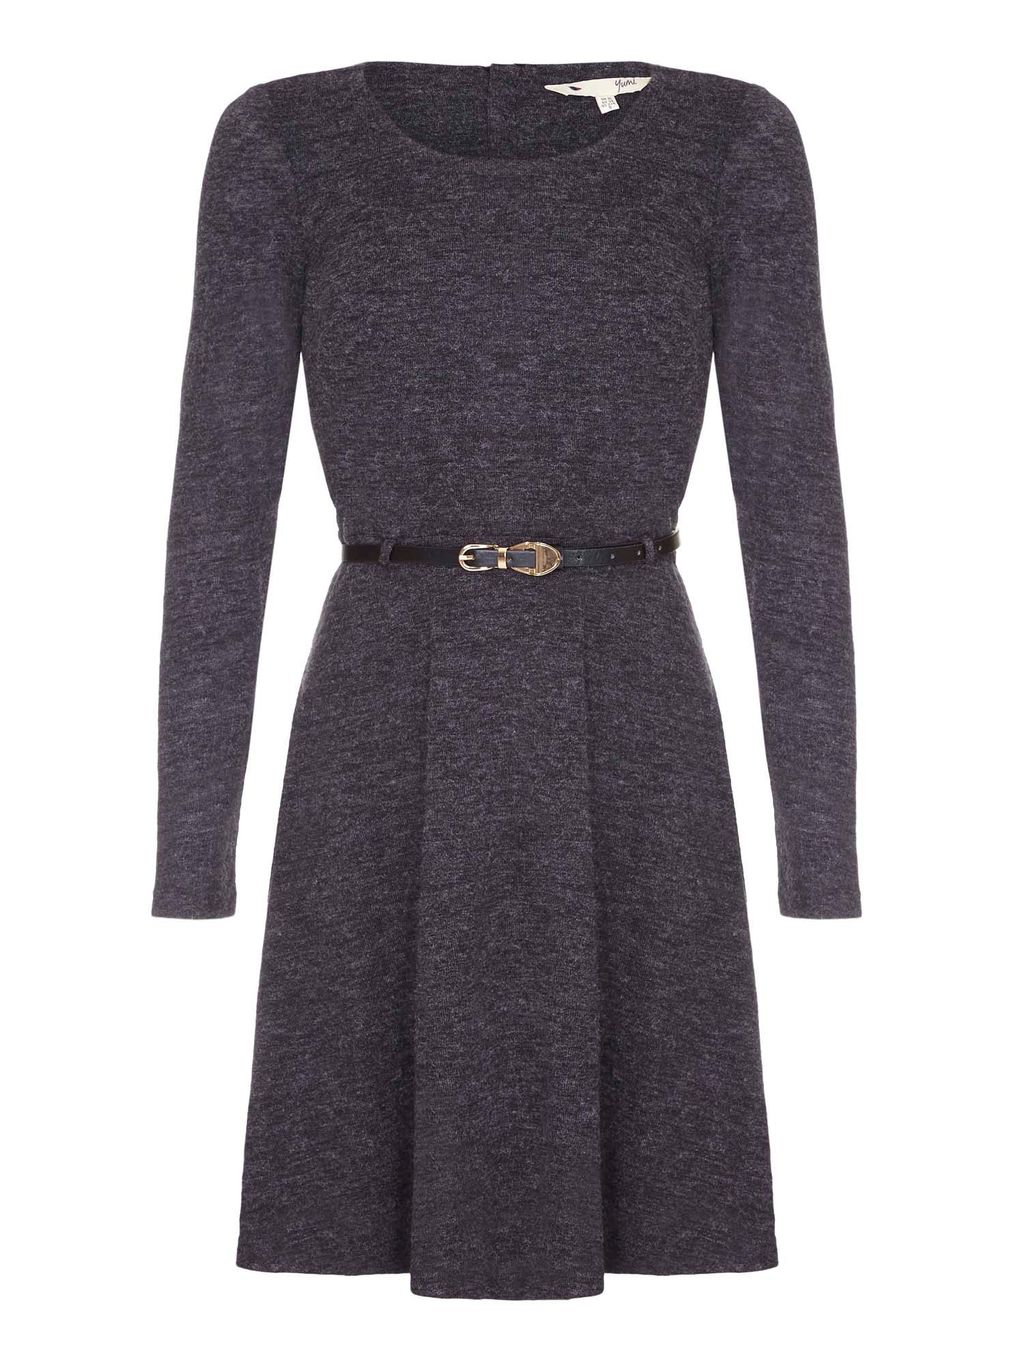 Black Knitted Belt Dress With Long Sleeves, Charcoal - pattern: plain; waist detail: belted waist/tie at waist/drawstring; predominant colour: charcoal; occasions: casual; length: just above the knee; fit: fitted at waist & bust; style: fit & flare; fibres: polyester/polyamide - stretch; neckline: crew; sleeve length: long sleeve; sleeve style: standard; texture group: knits/crochet; pattern type: fabric; wardrobe: basic; season: a/w 2016